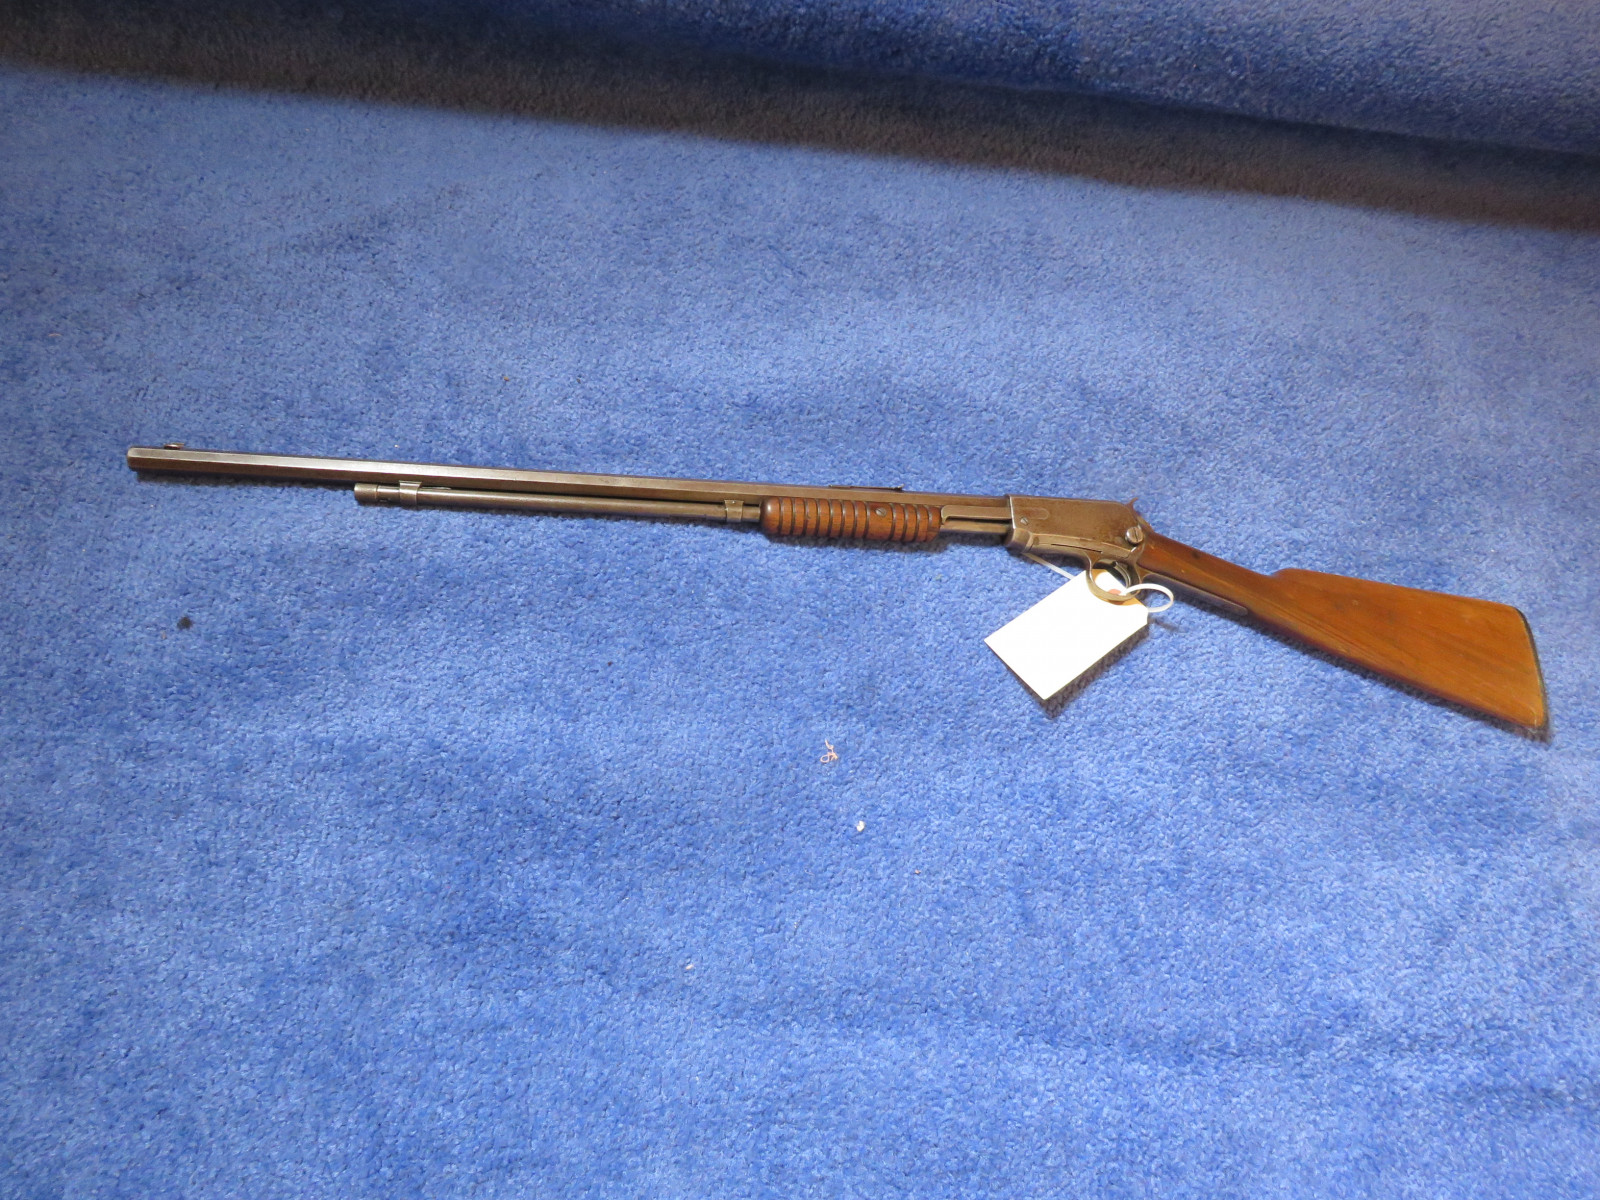 Winchester Model 1890 .22 Rifle - Image 2